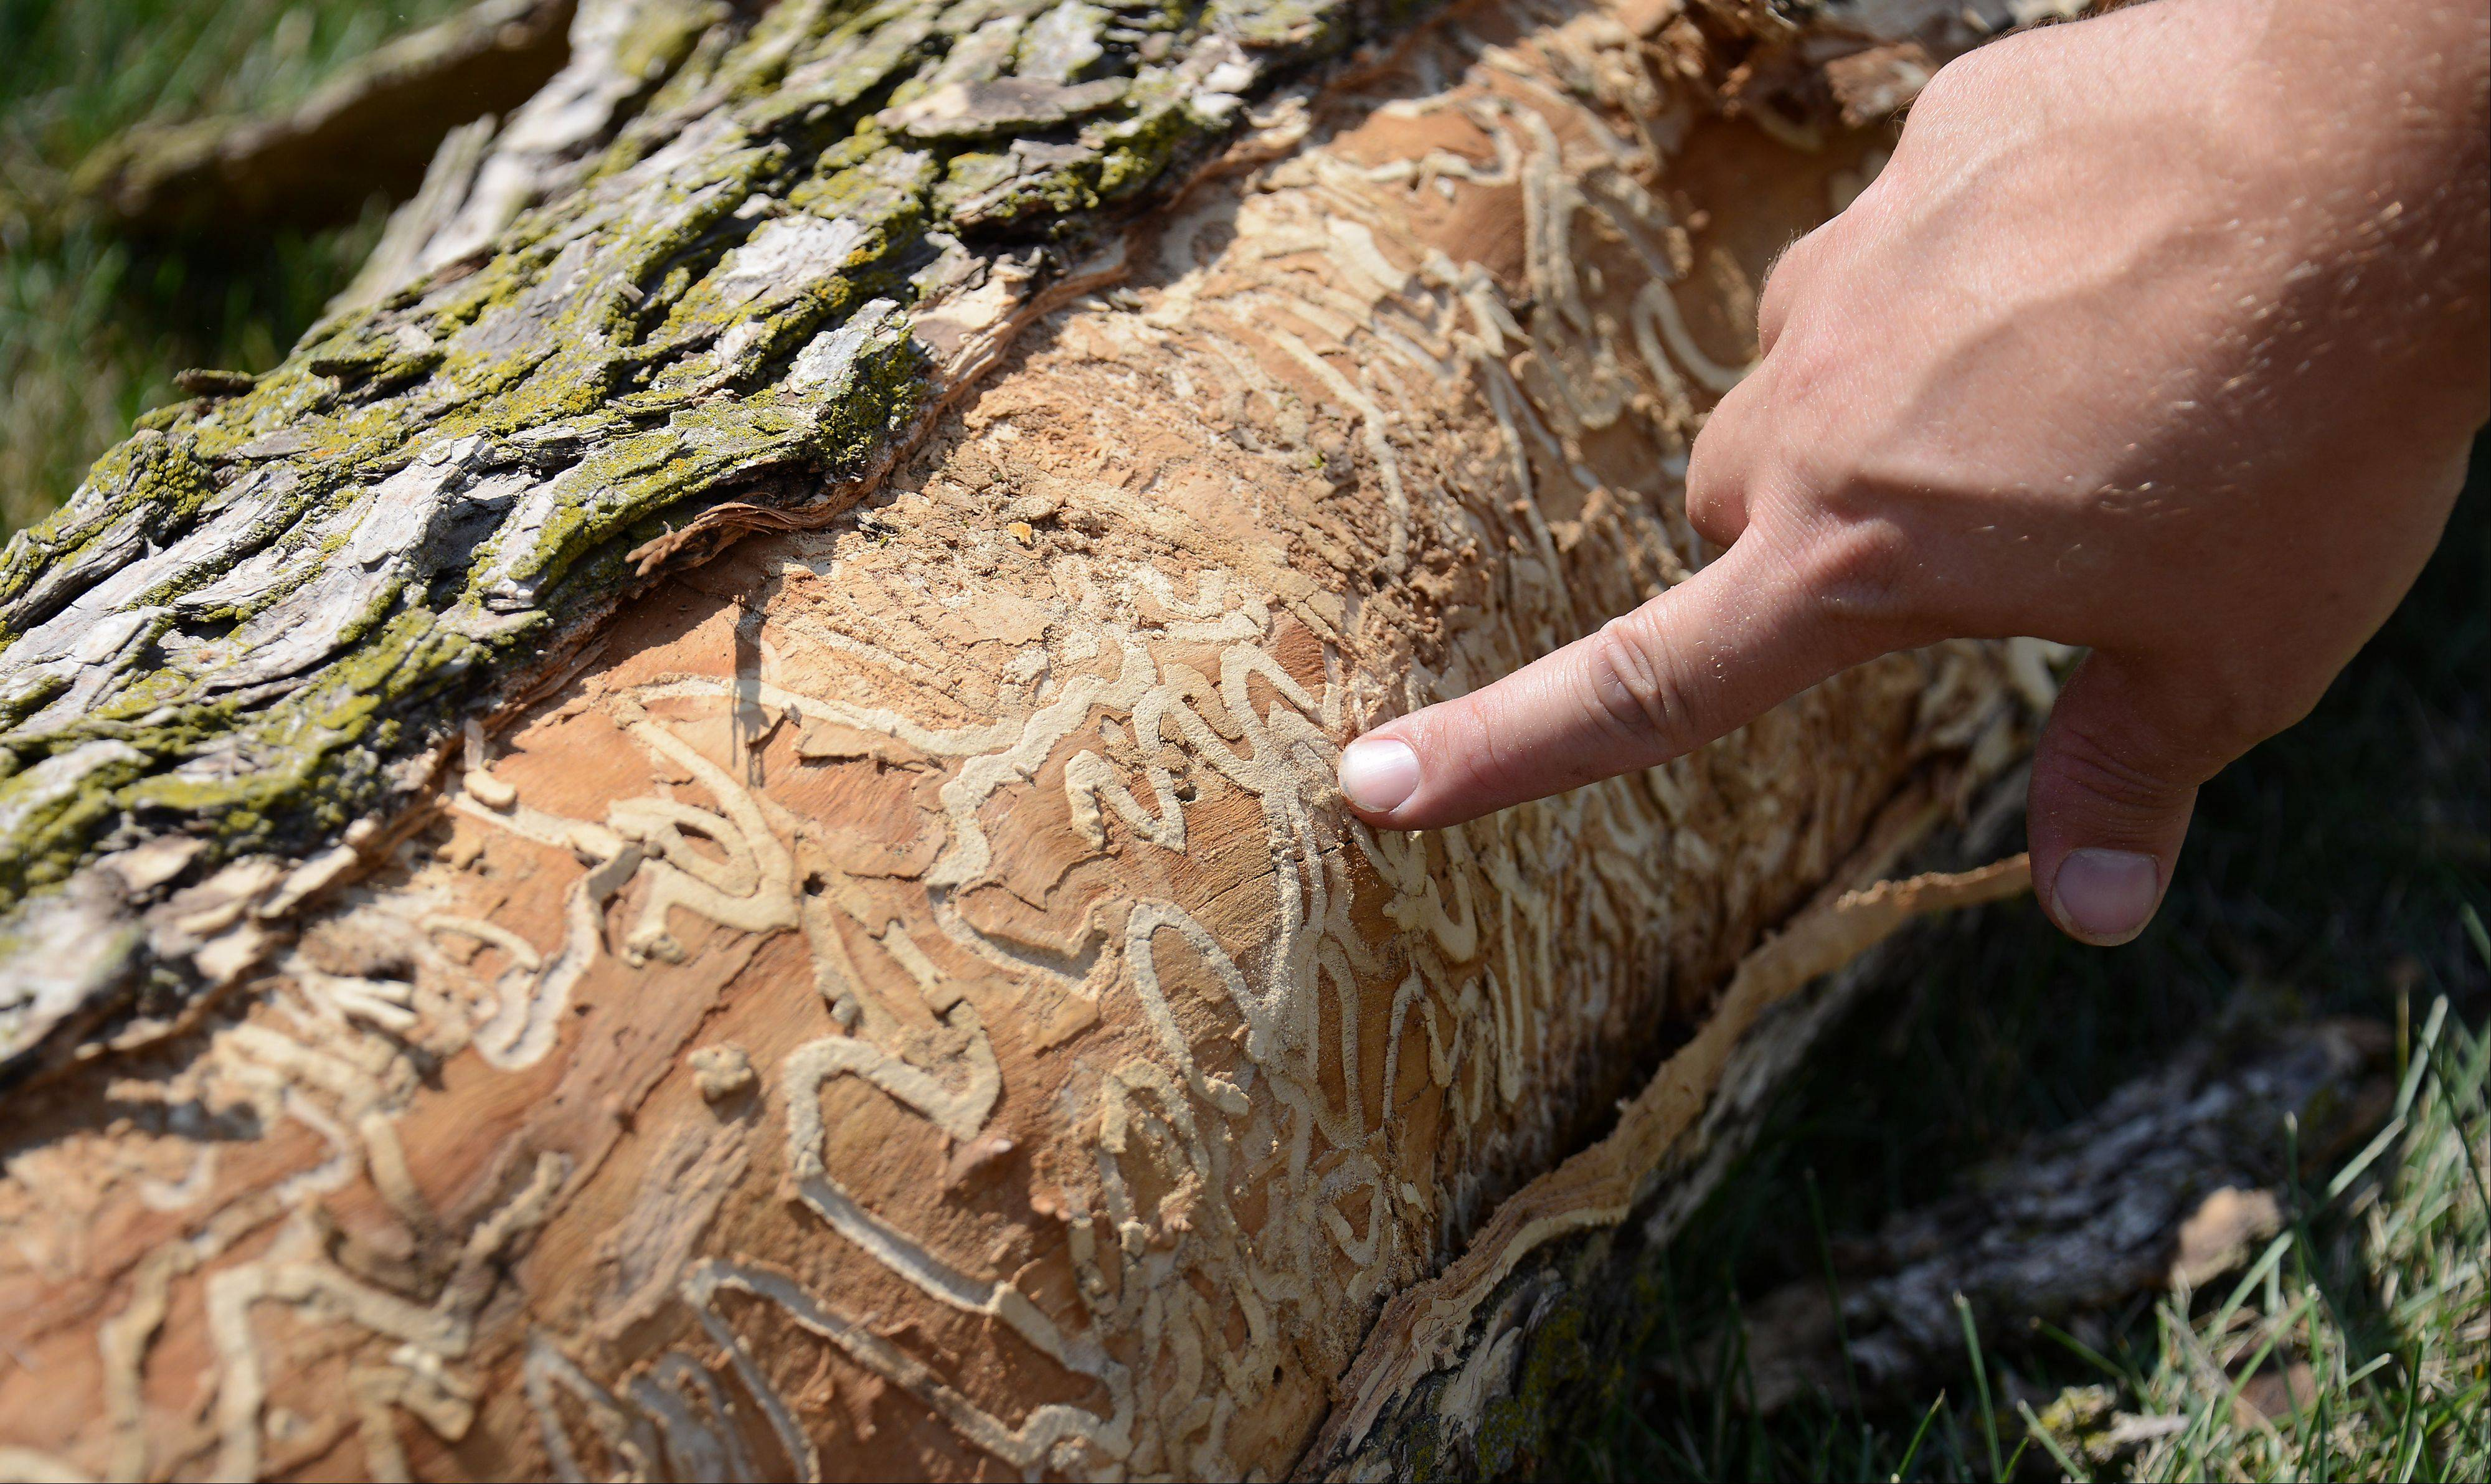 Could emerald ash borer disaster happen again?